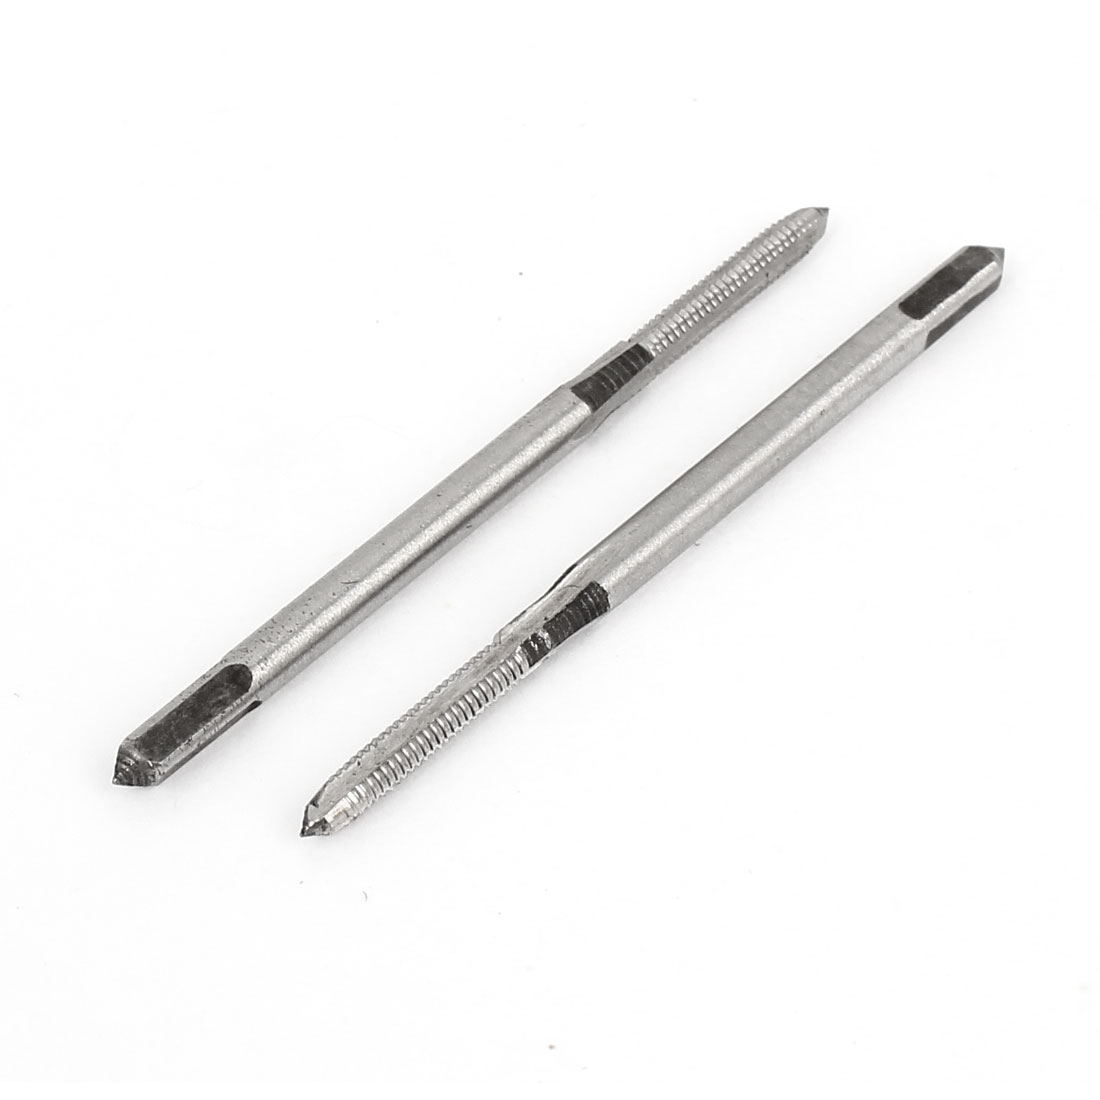 2 Pcs 45mm Total Length 3 Flutes HSS Hand Screw Thread Taper Taps